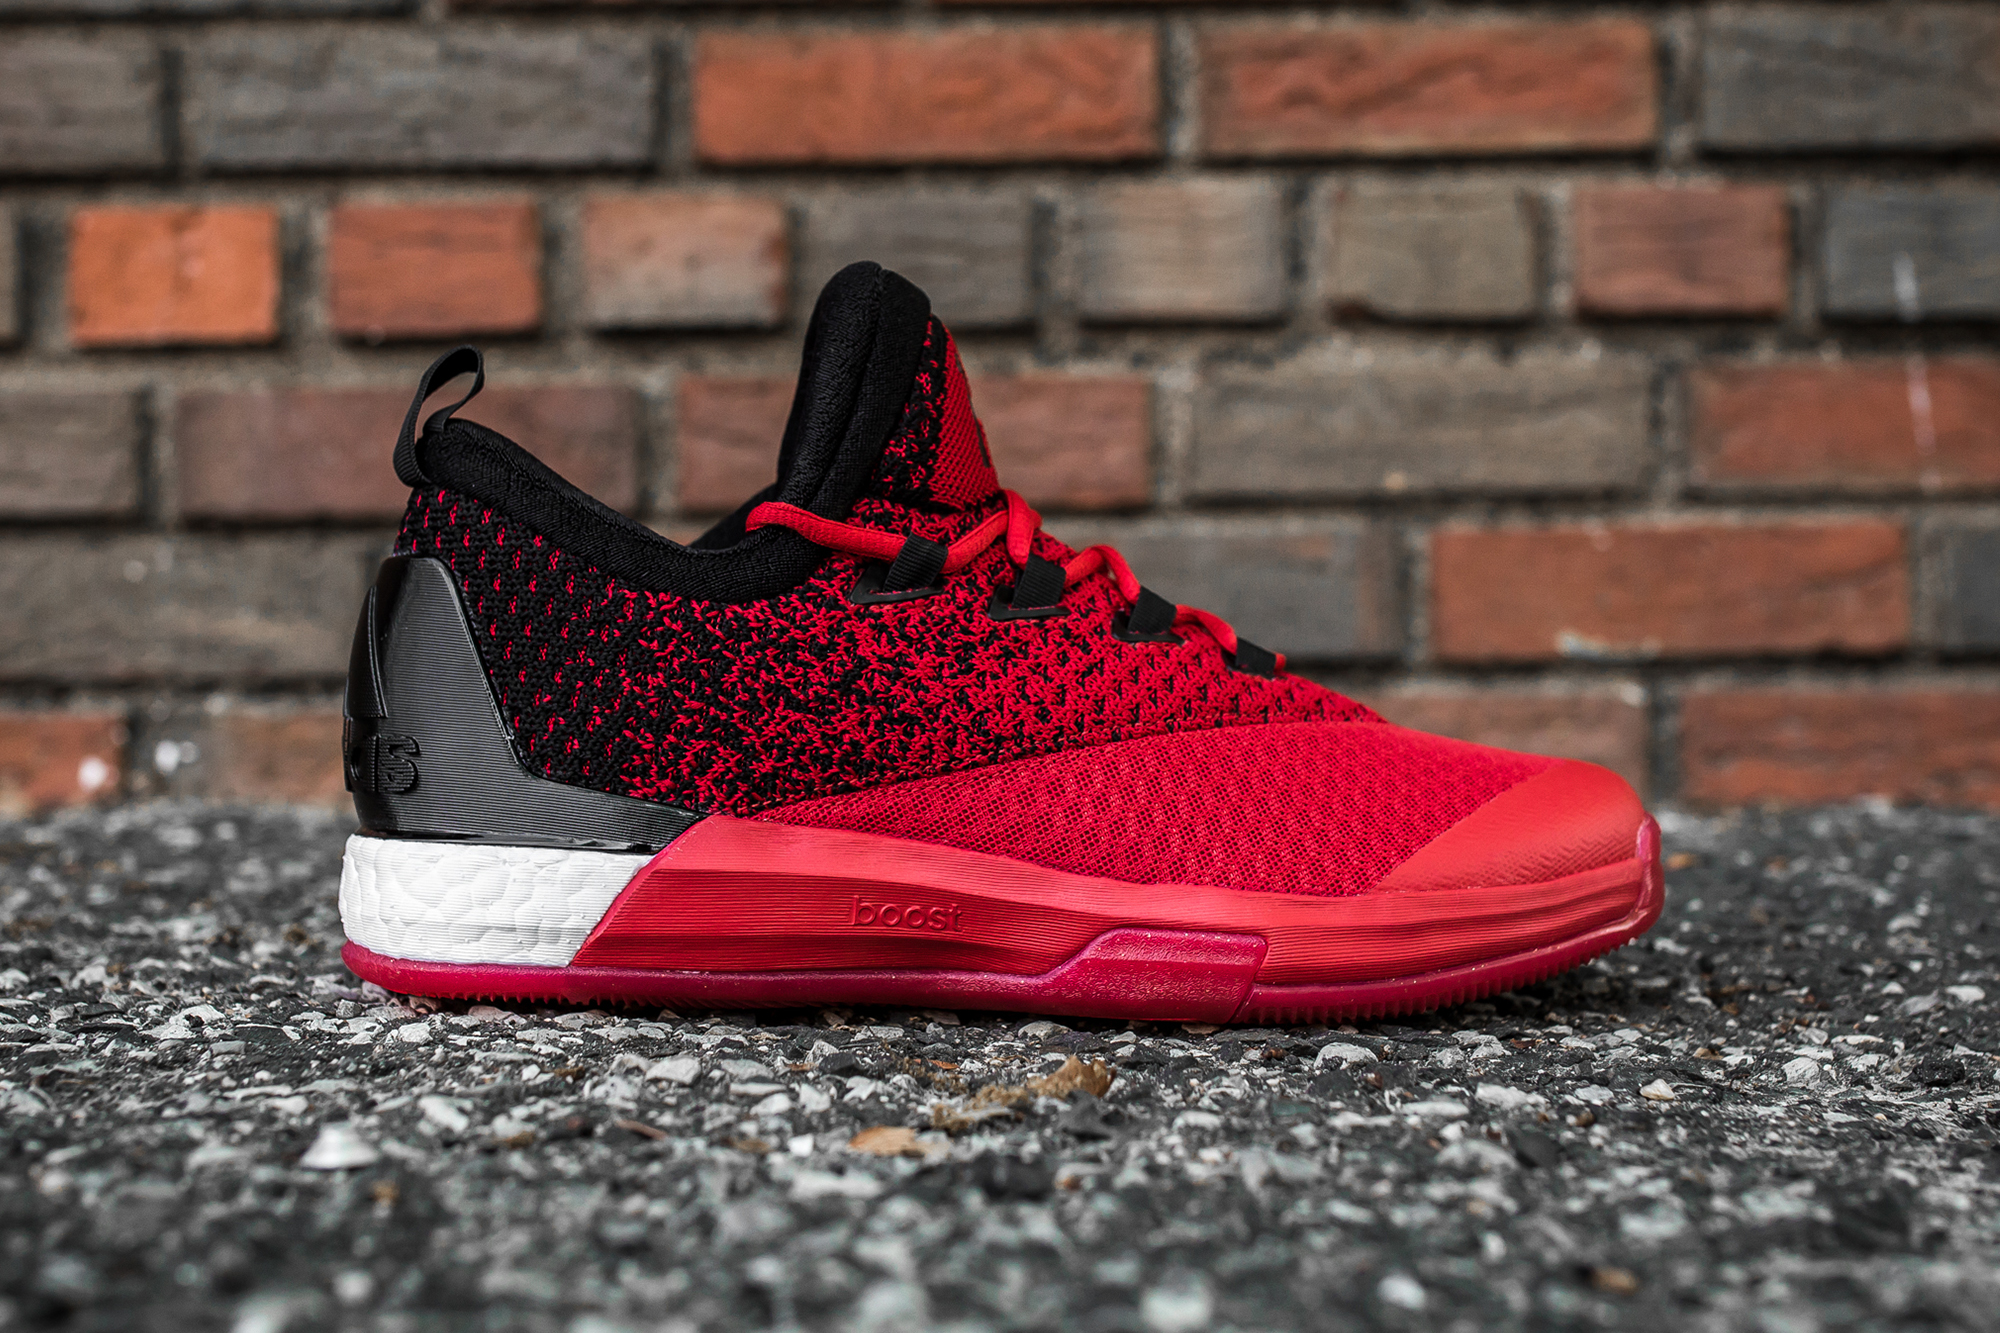 ... hot adidas crazylight boost 2.5 low red black side 532c9 d32e2 35134939a